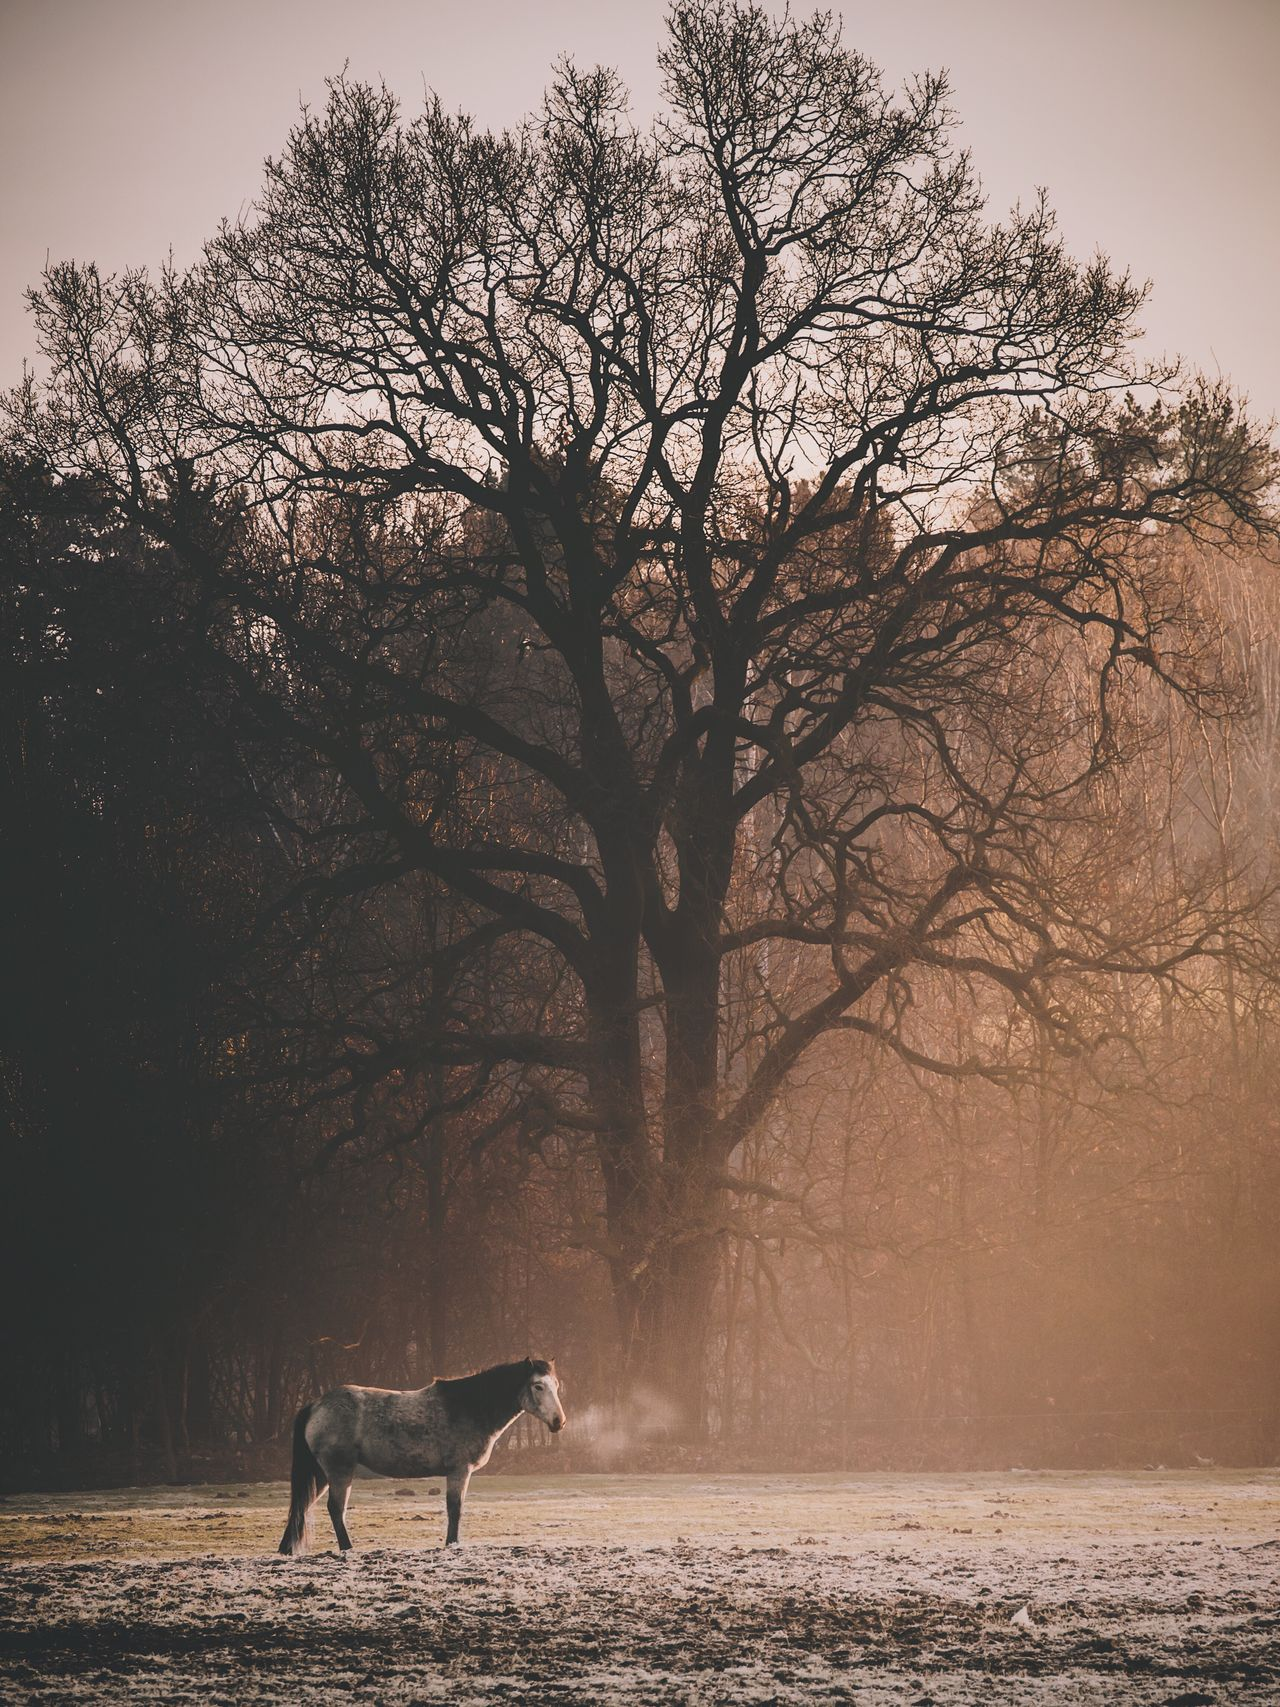 One Animal Animal Themes Tree Domestic Animals Bare Tree Mammal Nature Outdoors No People Day Branch Beauty In Nature Pets Winter Sky